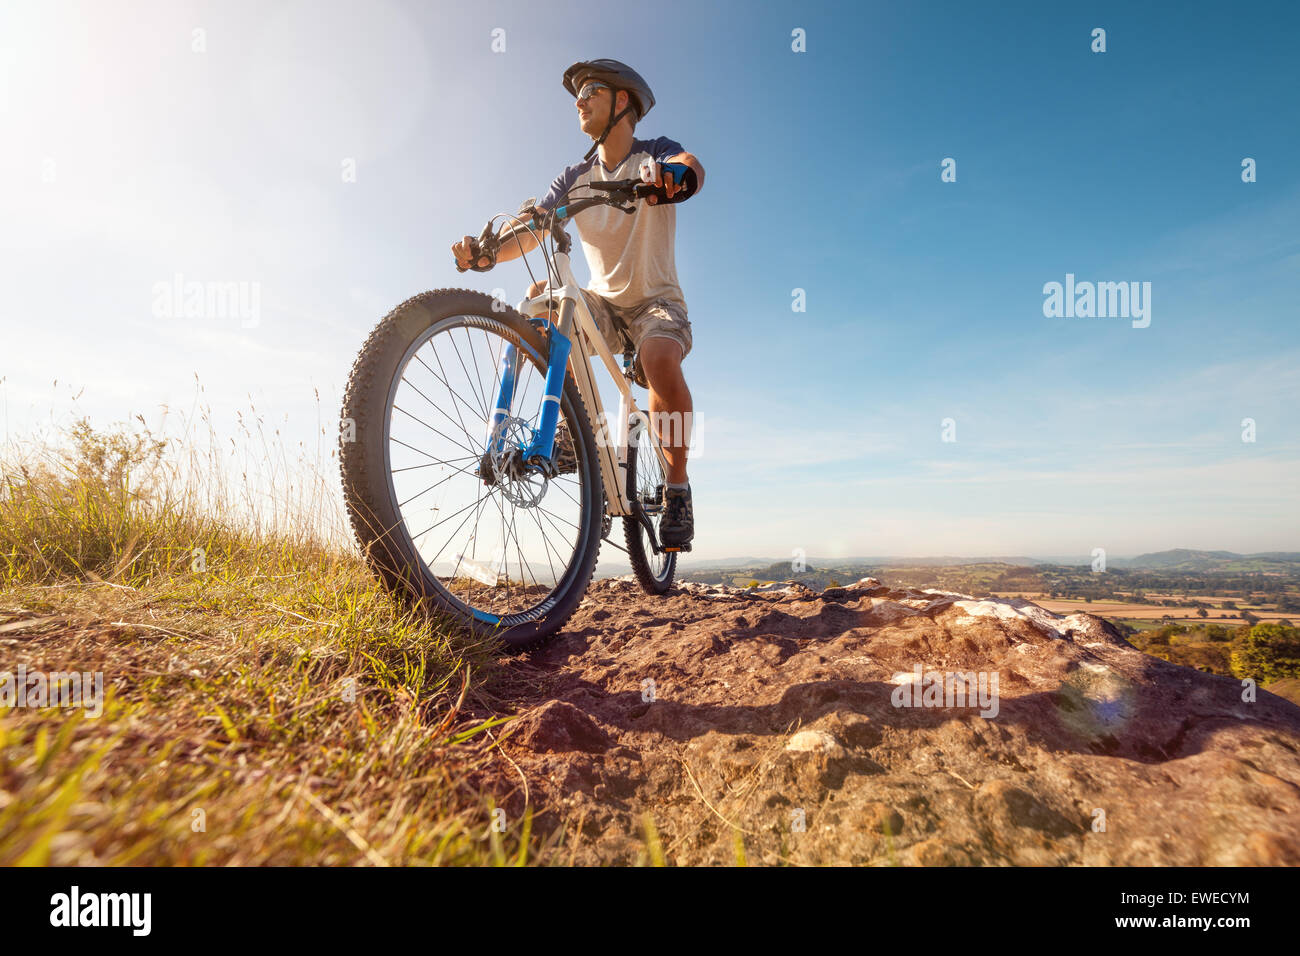 Mountain biker in action - Stock Image